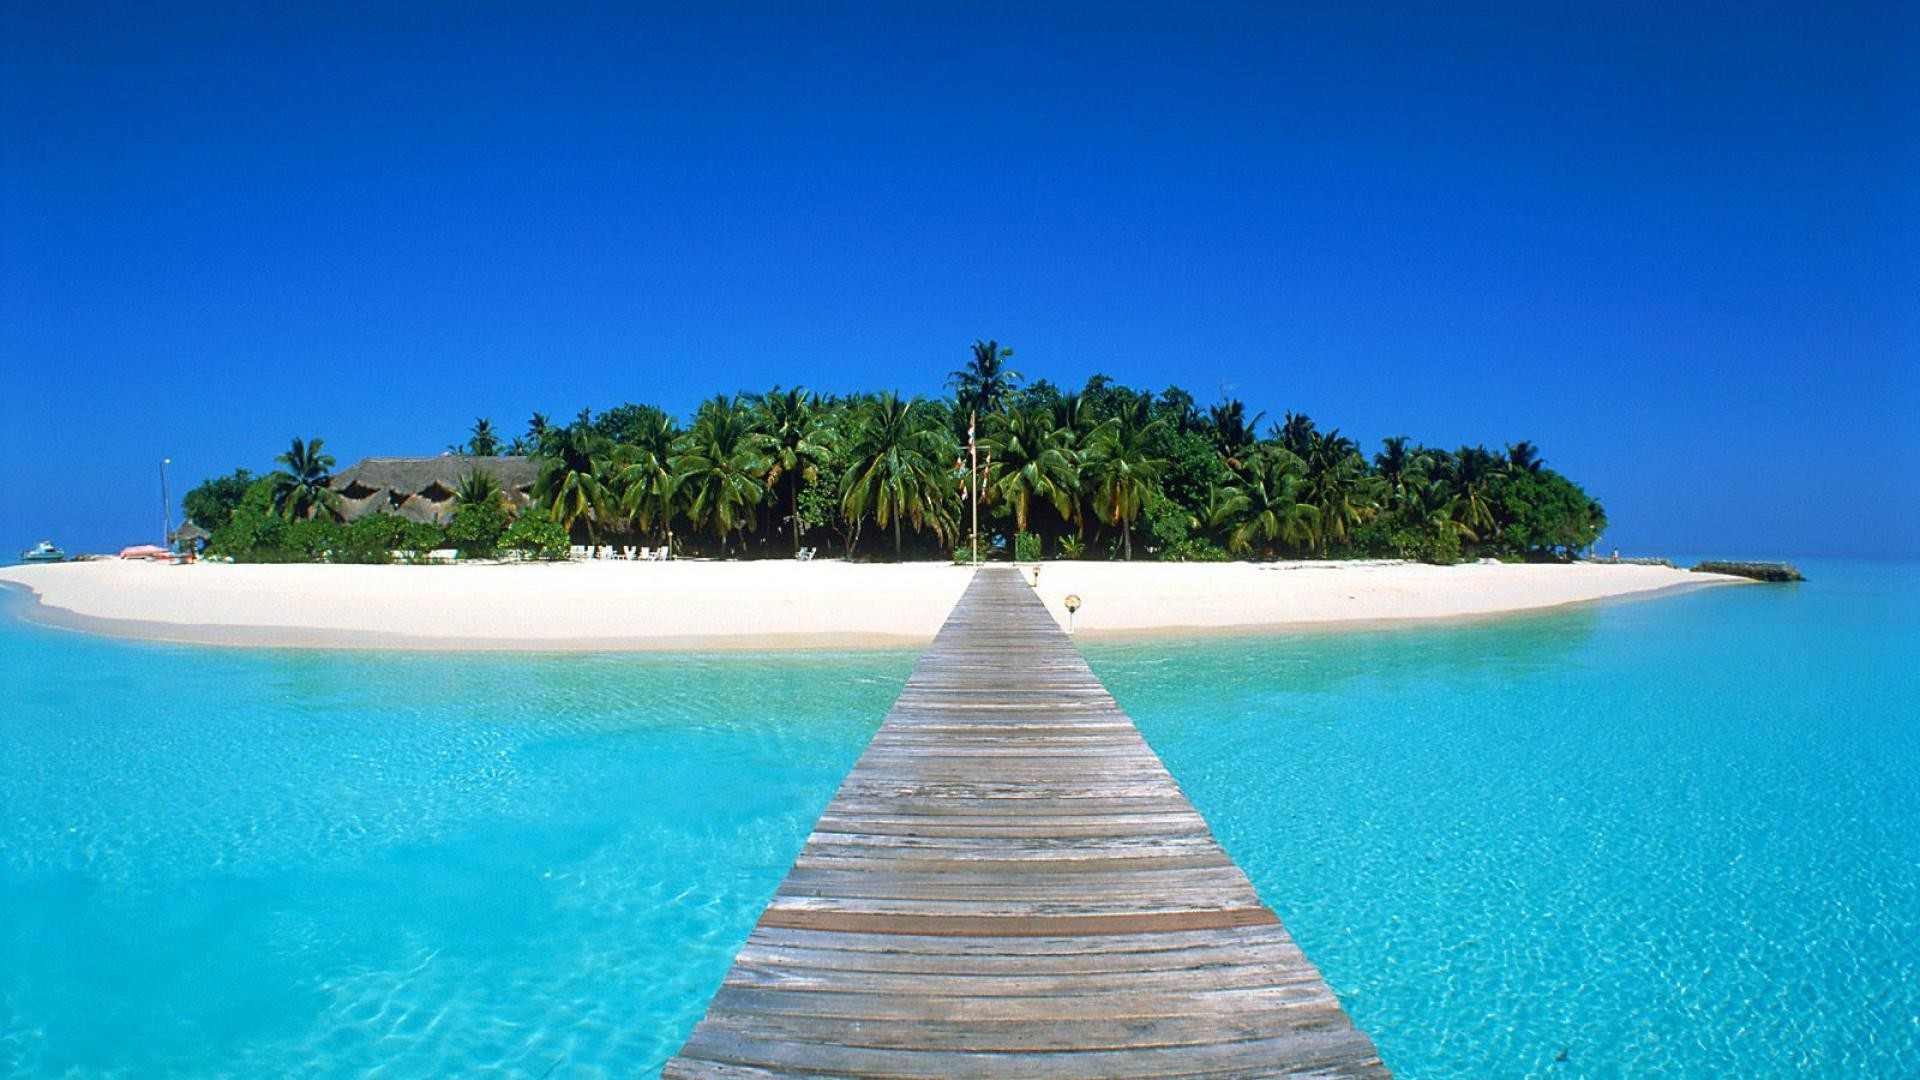 Maldives Island Beach Wallpaper Background Wid #2355 Wallpaper .